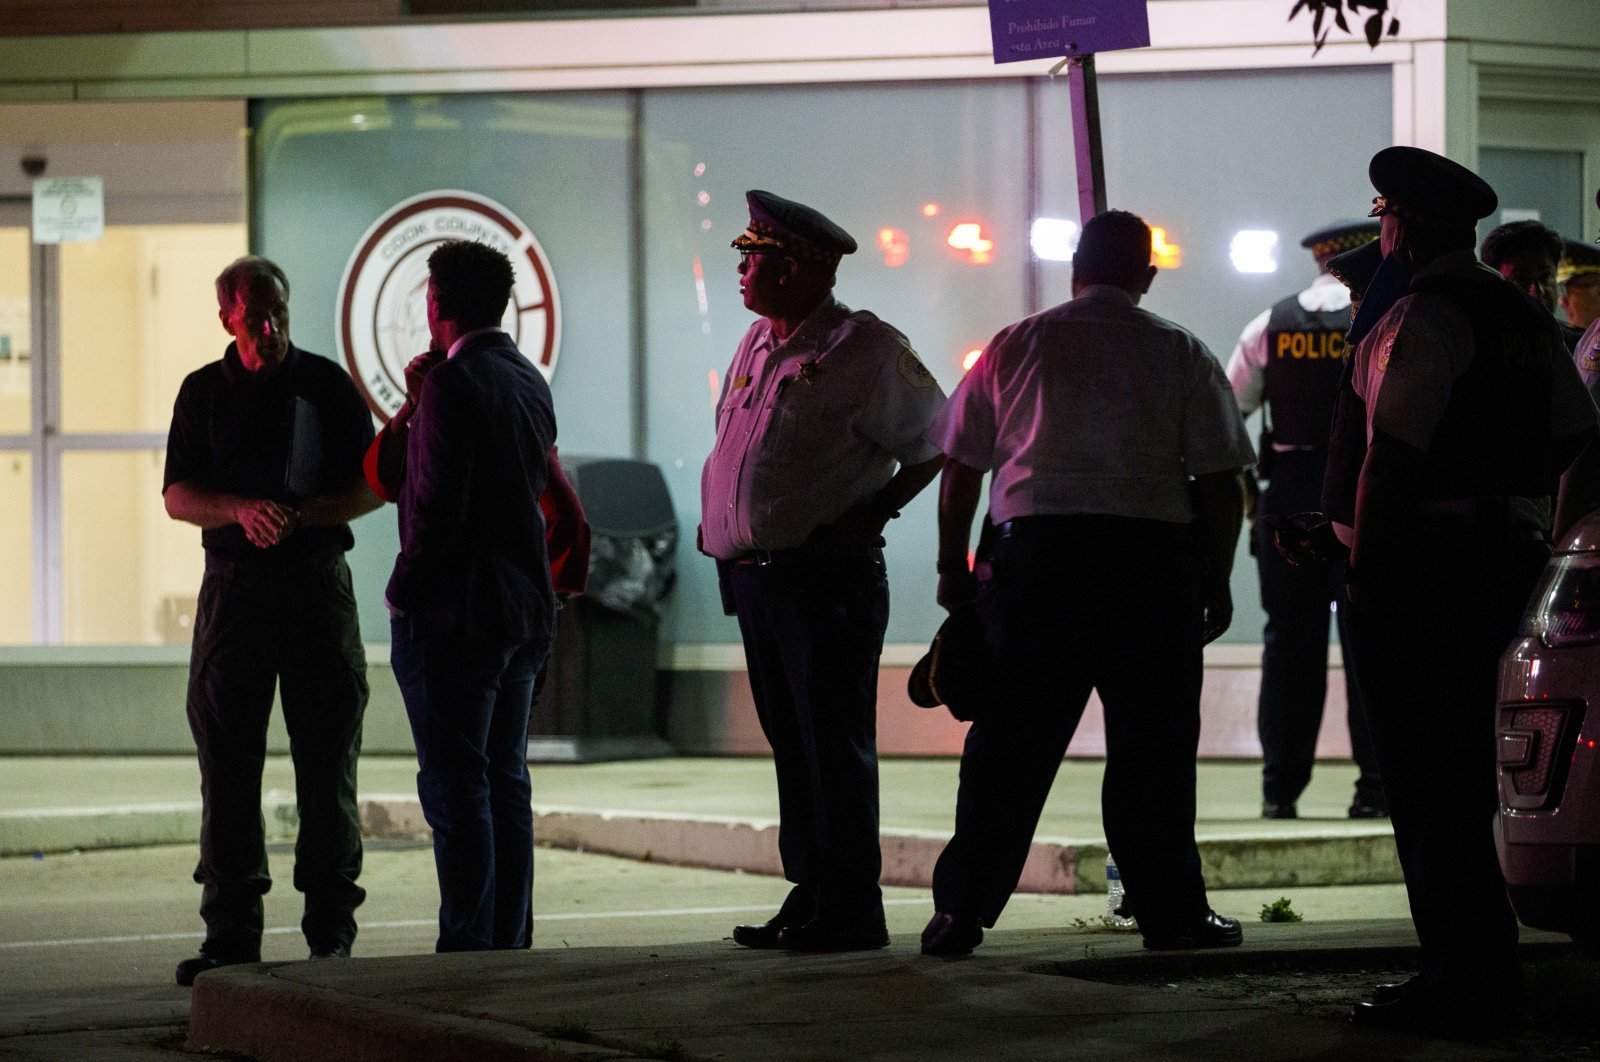 Police gather outside Stroger Hospital where two officers were brought after being shot while dispersing a crowd on the 100 block of North Long Avenue during the Fourth of July long-weekend in the early hours of Monday, July 5, 2021, Chicago, U.S. (Chicago Tribune via AP)